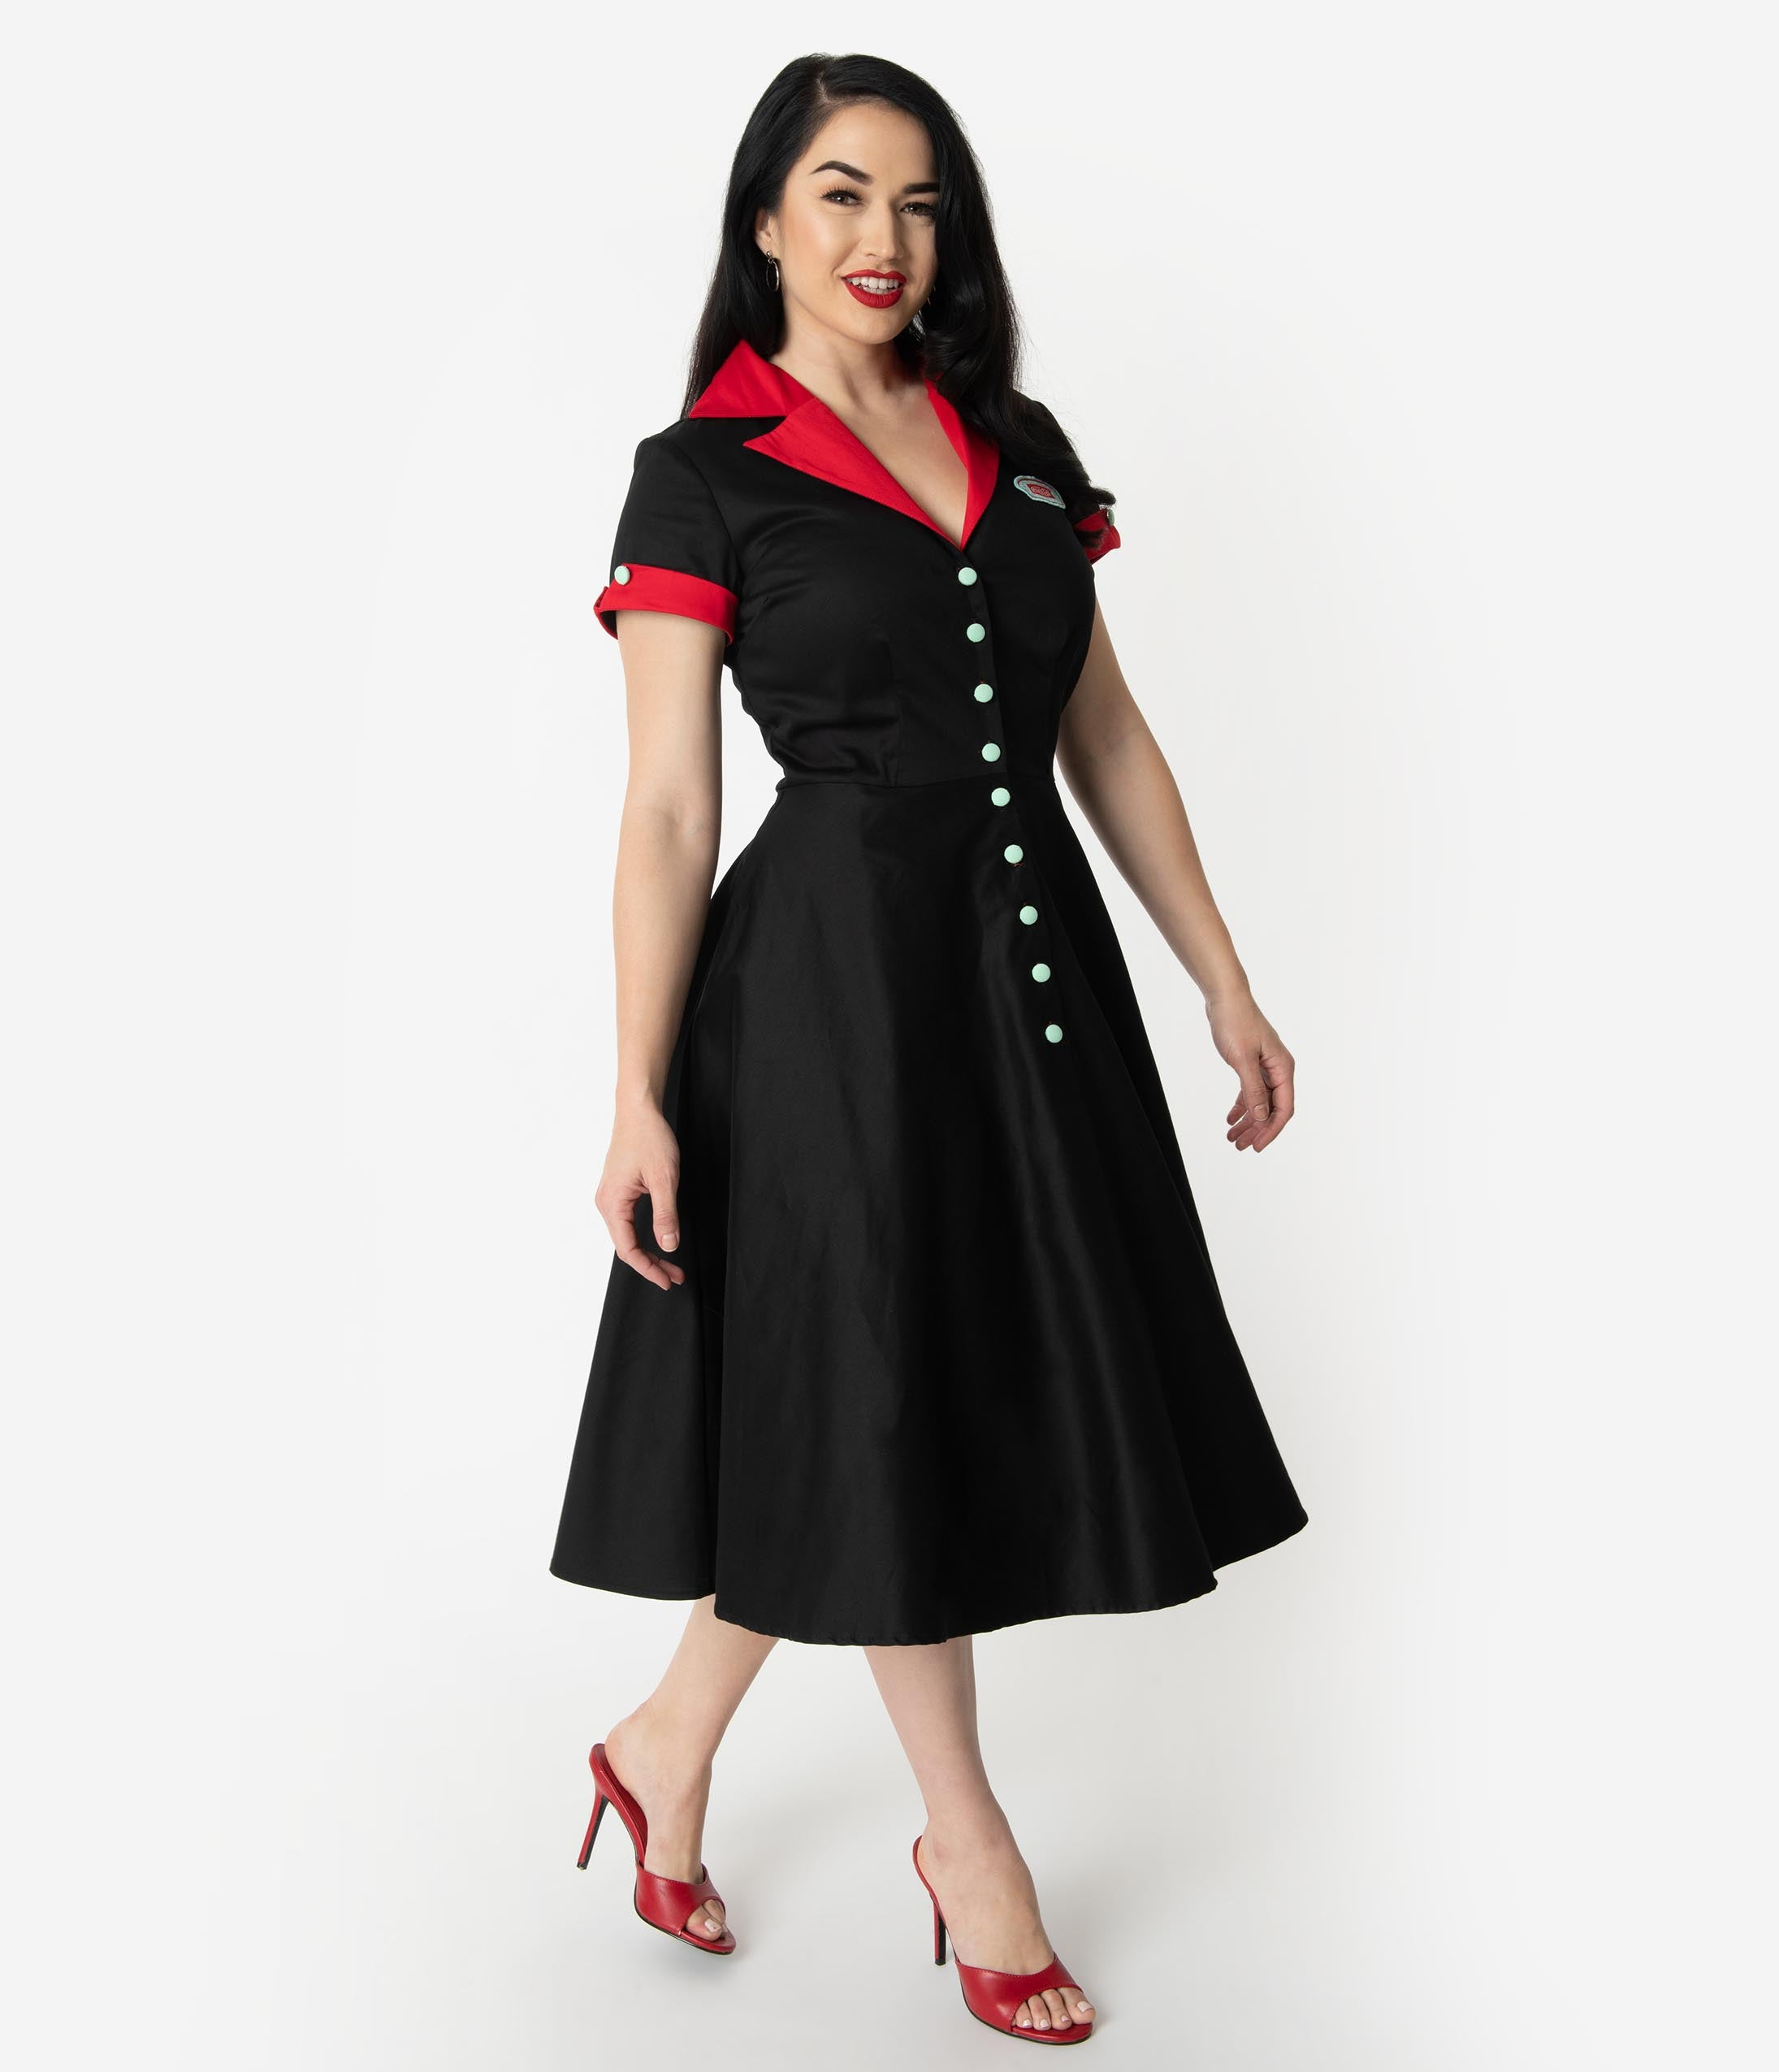 50s Costumes | 50s Halloween Costumes Coca-Cola Collection By Unique Vintage 1950S Black  Red Fizzy Swing Diner Dress $118.00 AT vintagedancer.com